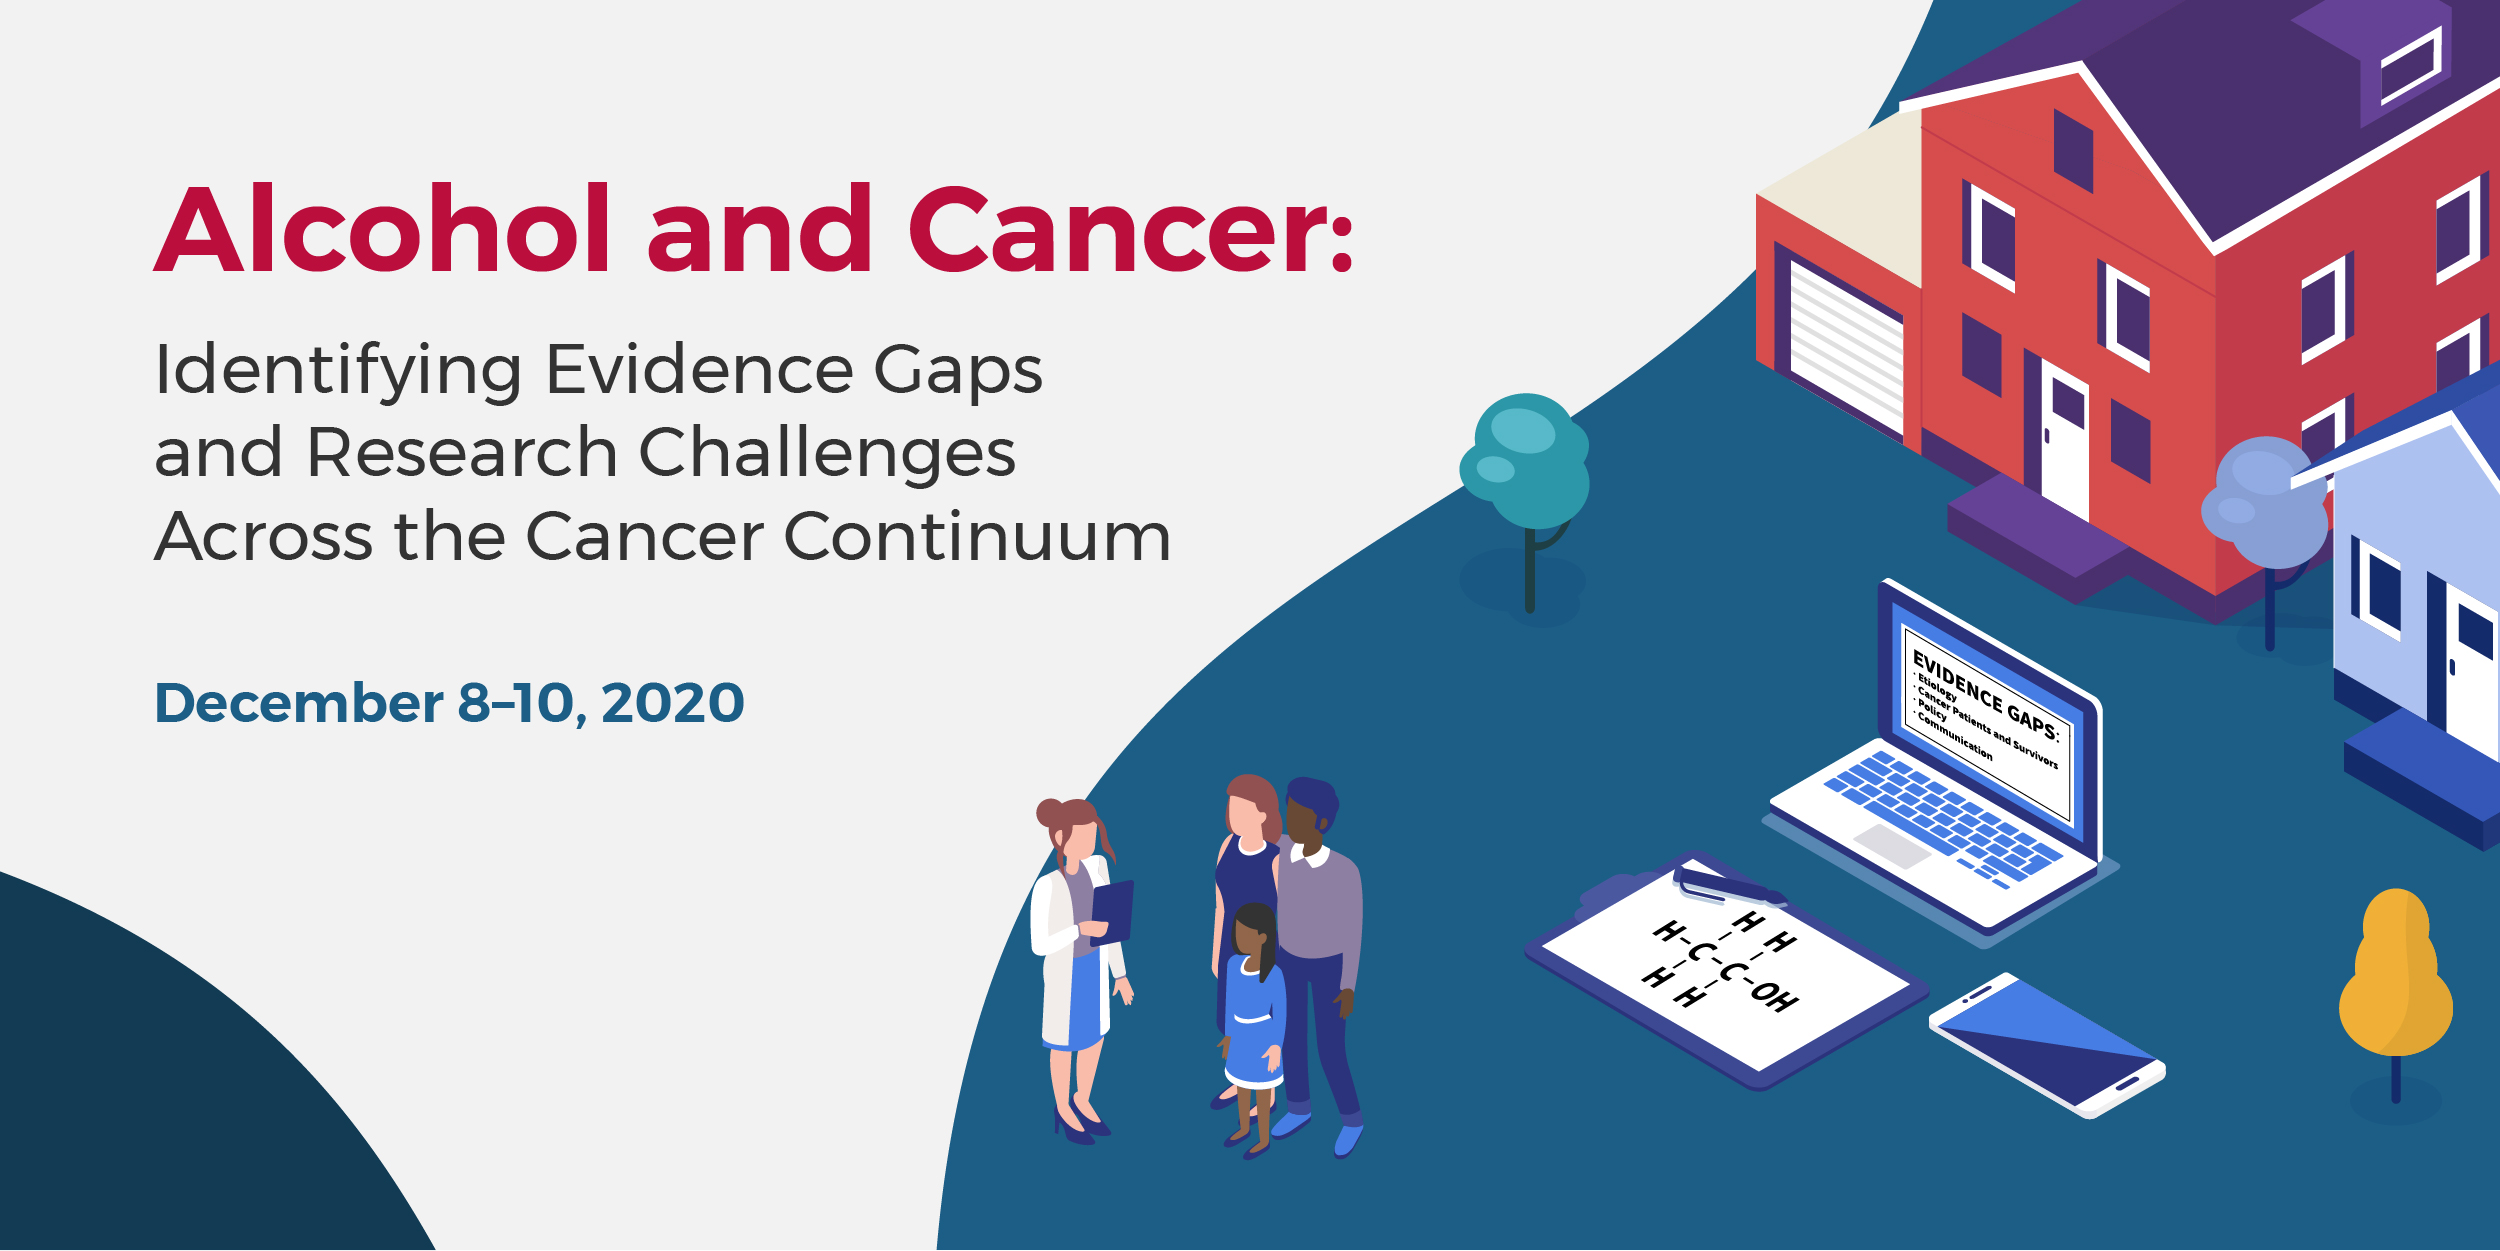 Alcohol and cancer: Identifying evidence gaps and research challenges across the cancer continuum